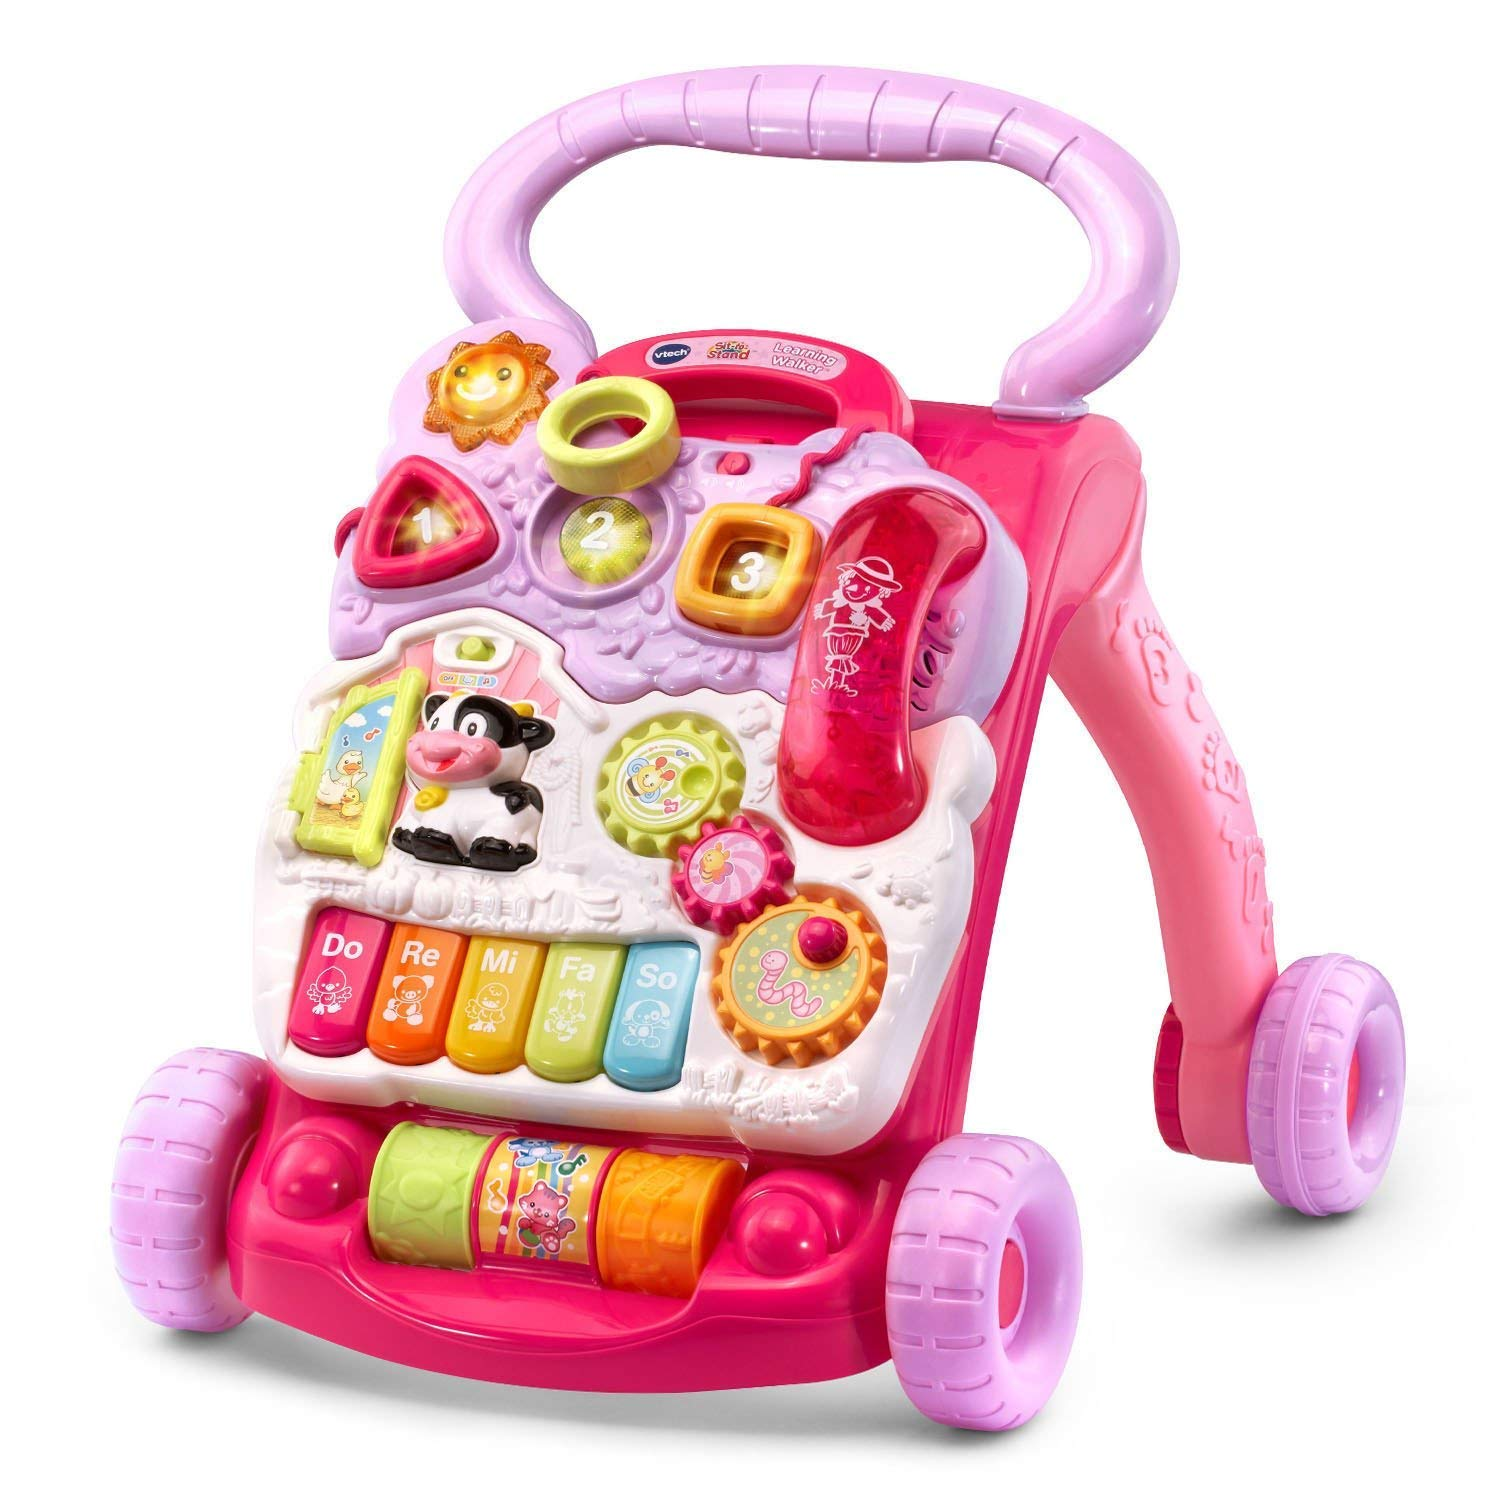 Tanhoo Sit-to-Stand Learning Walker - Pink - Online Exclusive